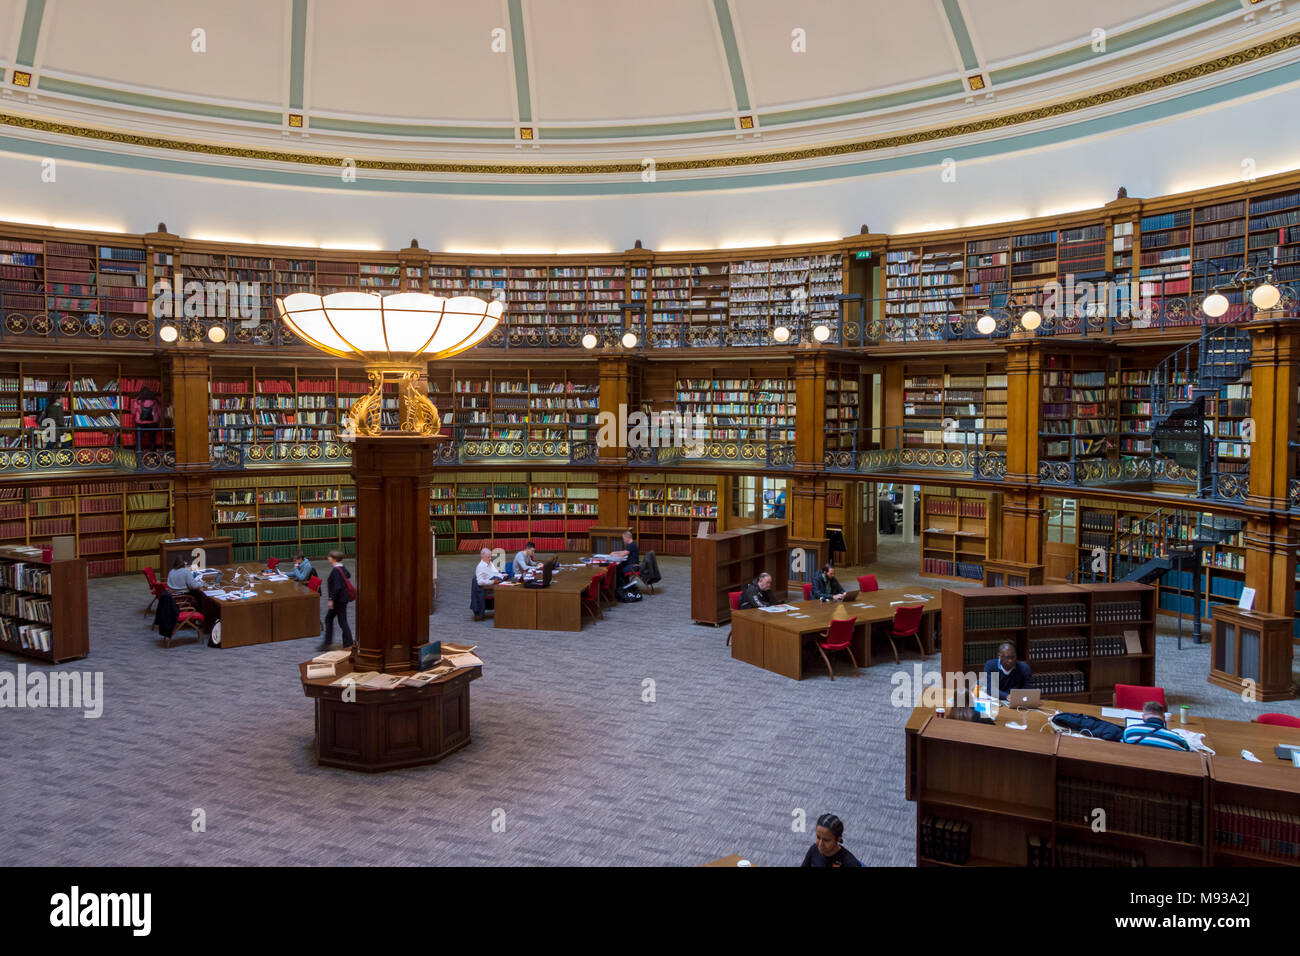 Inside the Picton Reading Room, Central Library,  by Cornelius Sherlock, 1879.  St. George's Quarter, Liverpool, England, UK - Stock Image